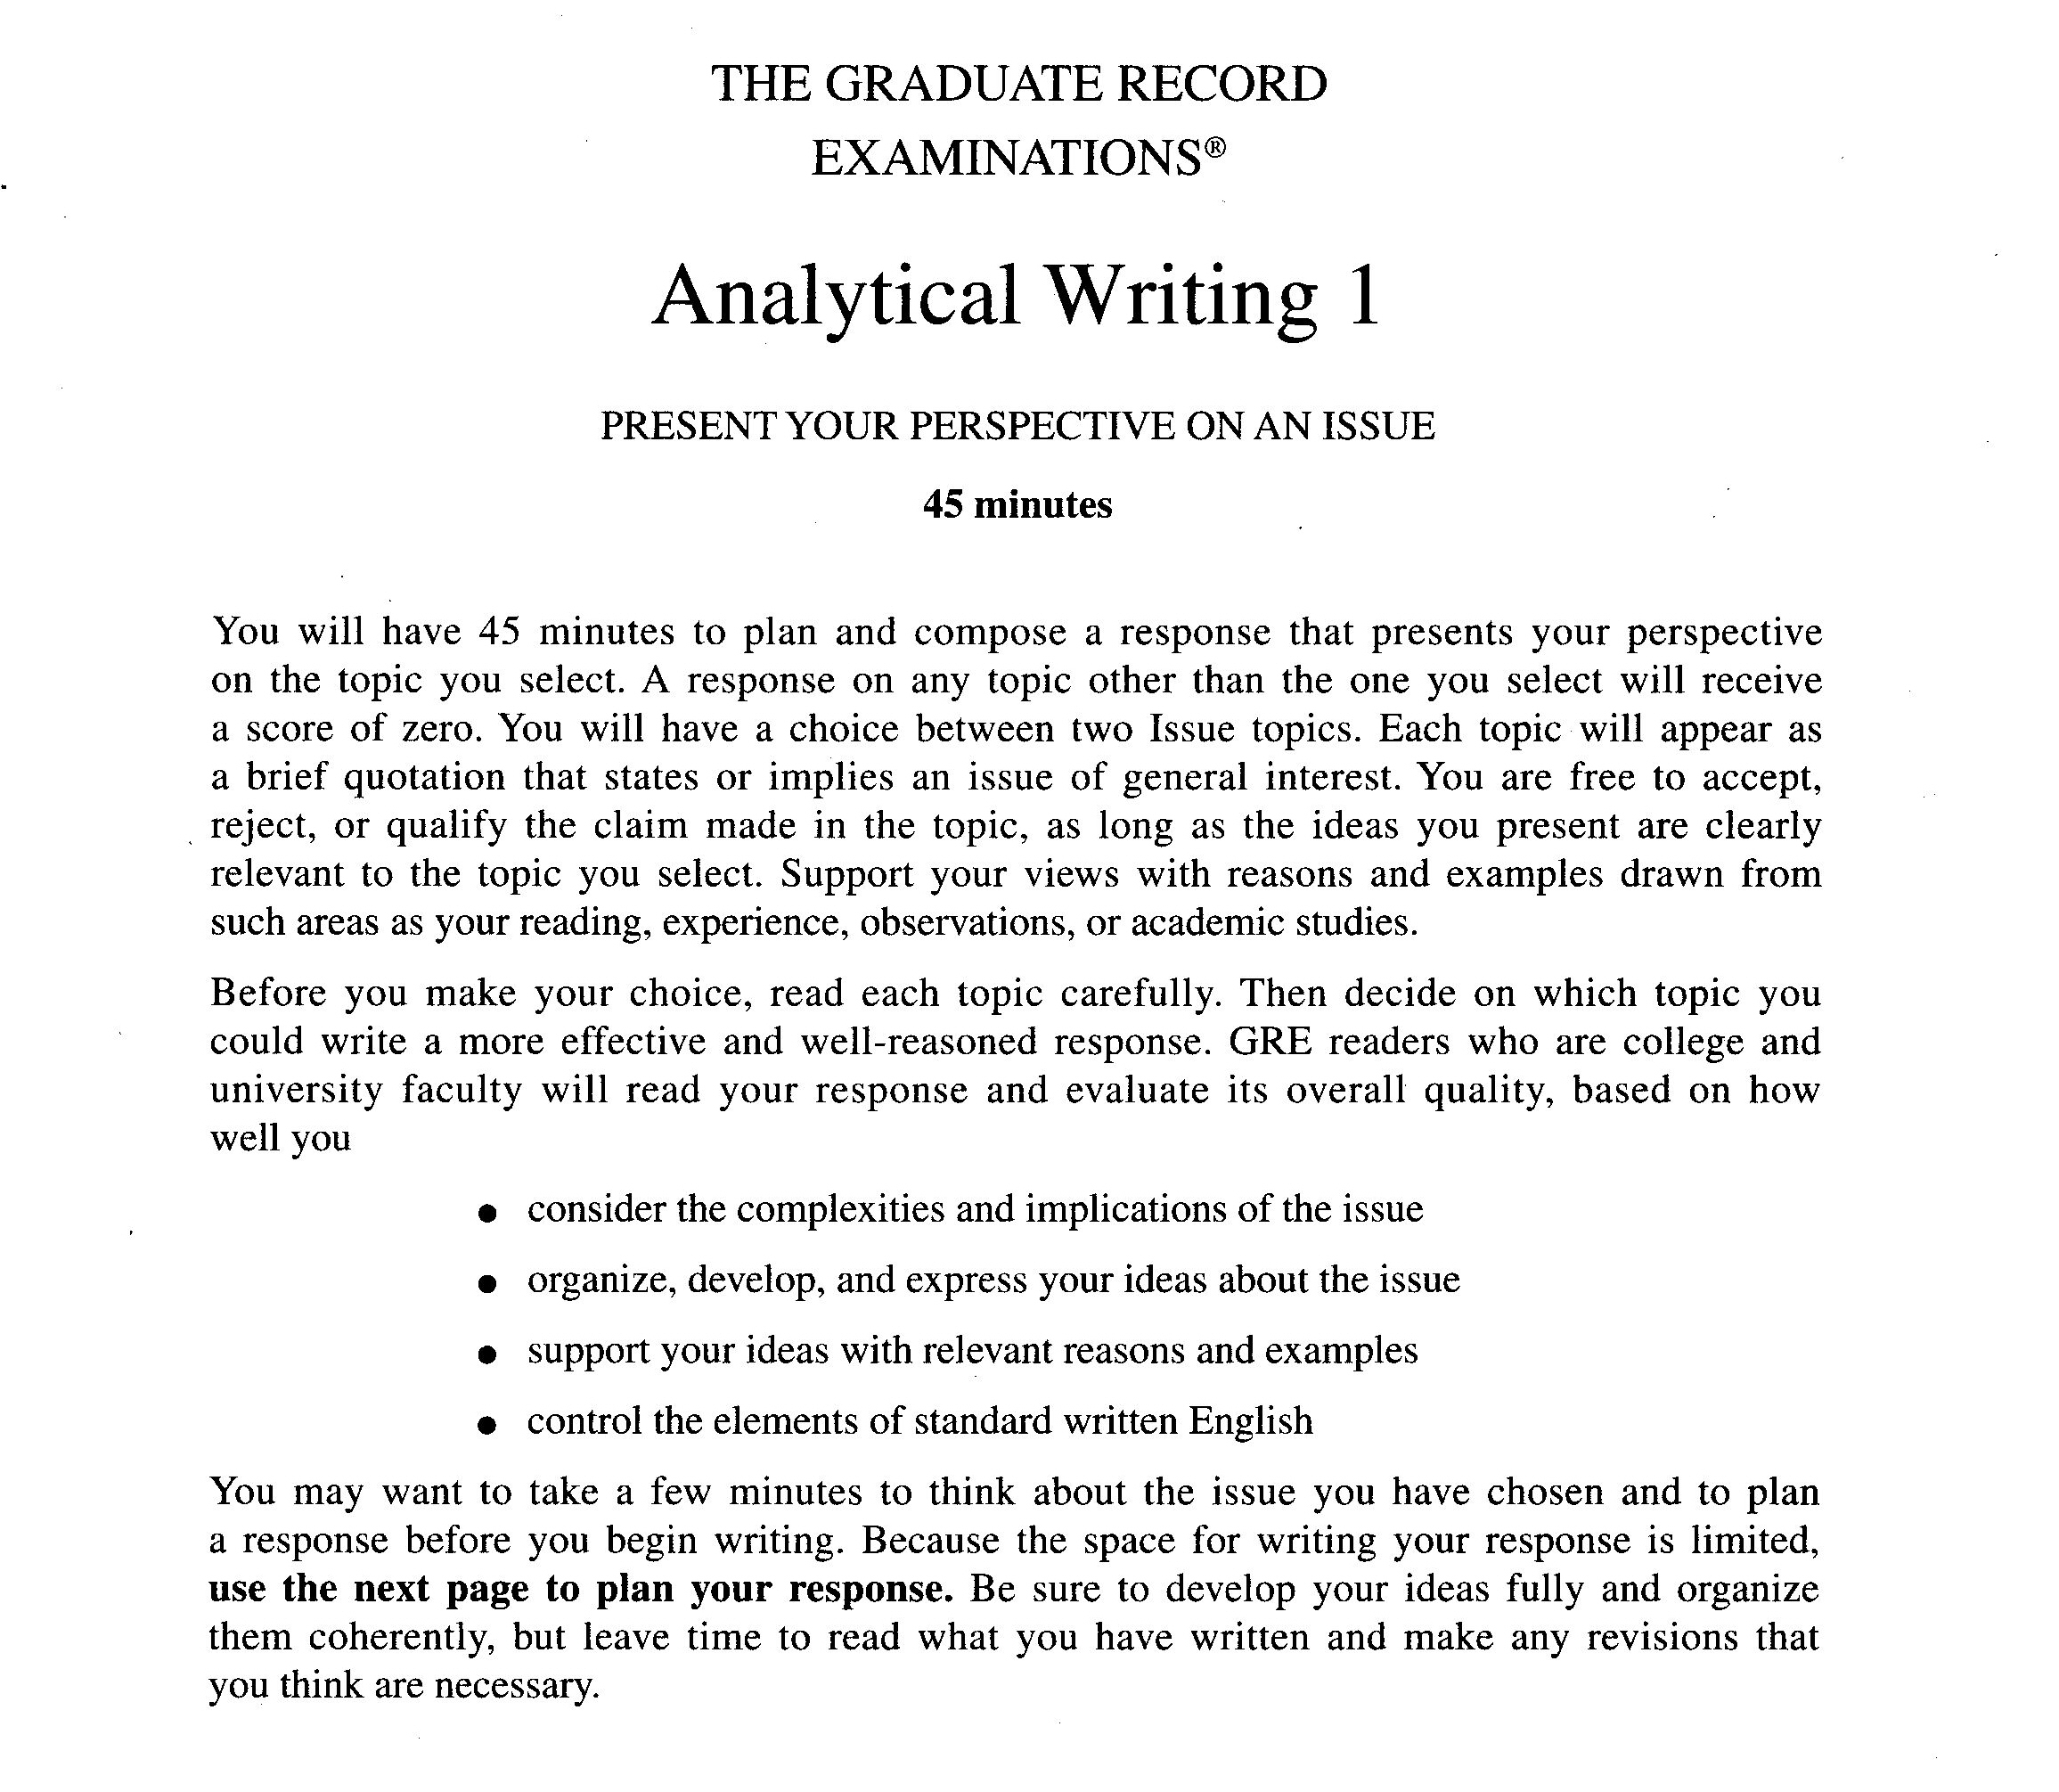 Lord of the flies analysis essay analytical essays examples